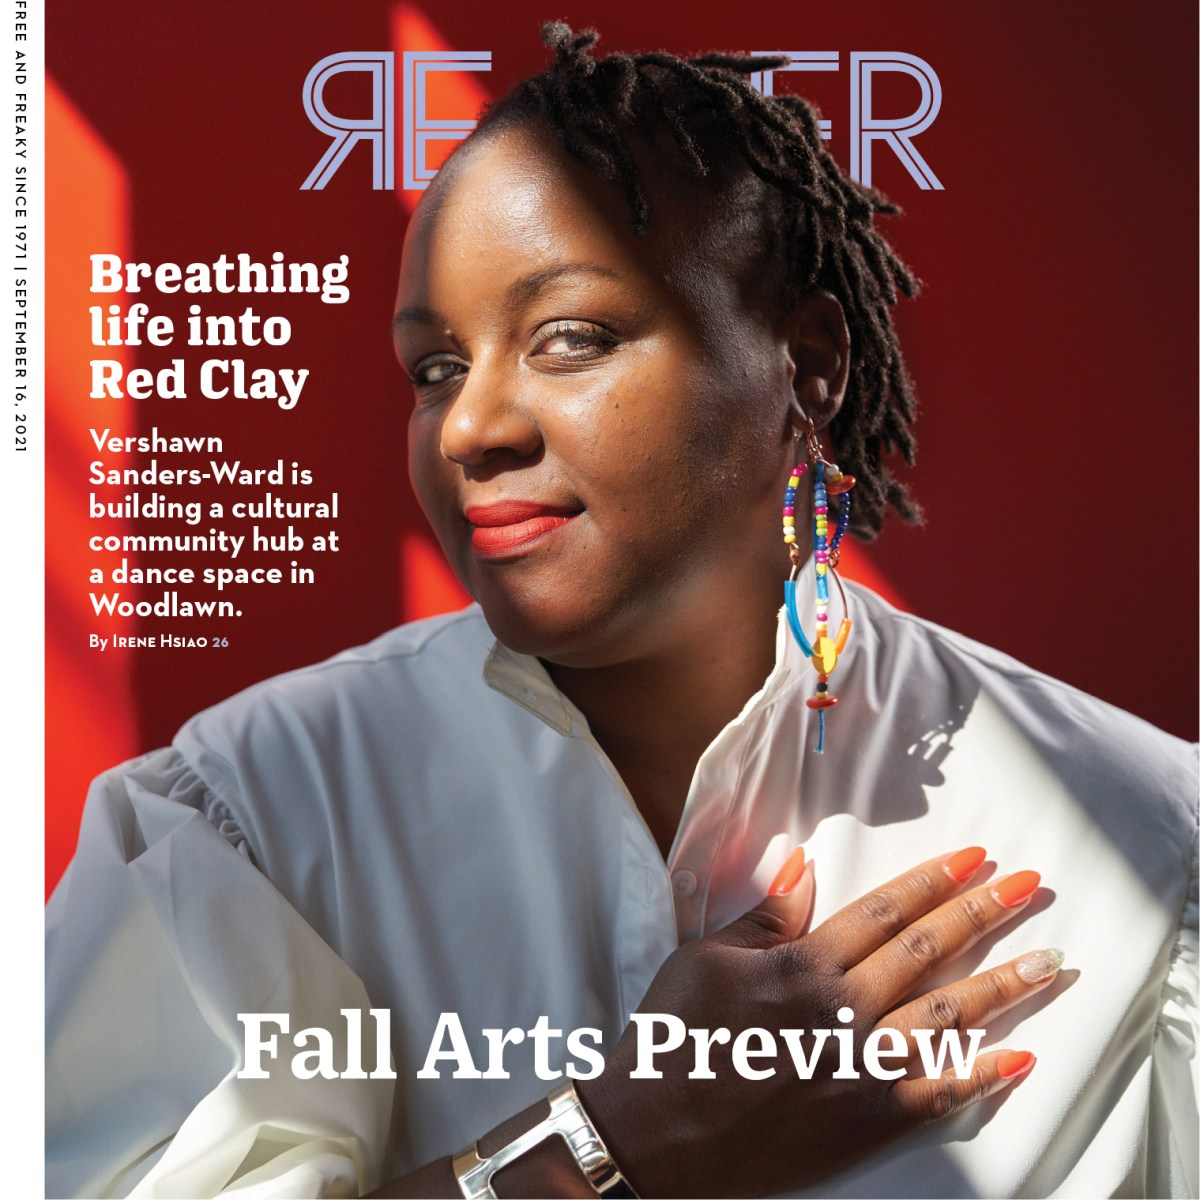 Image of the Reader cover featuring Vershawn Sanders-Ward in a white dress